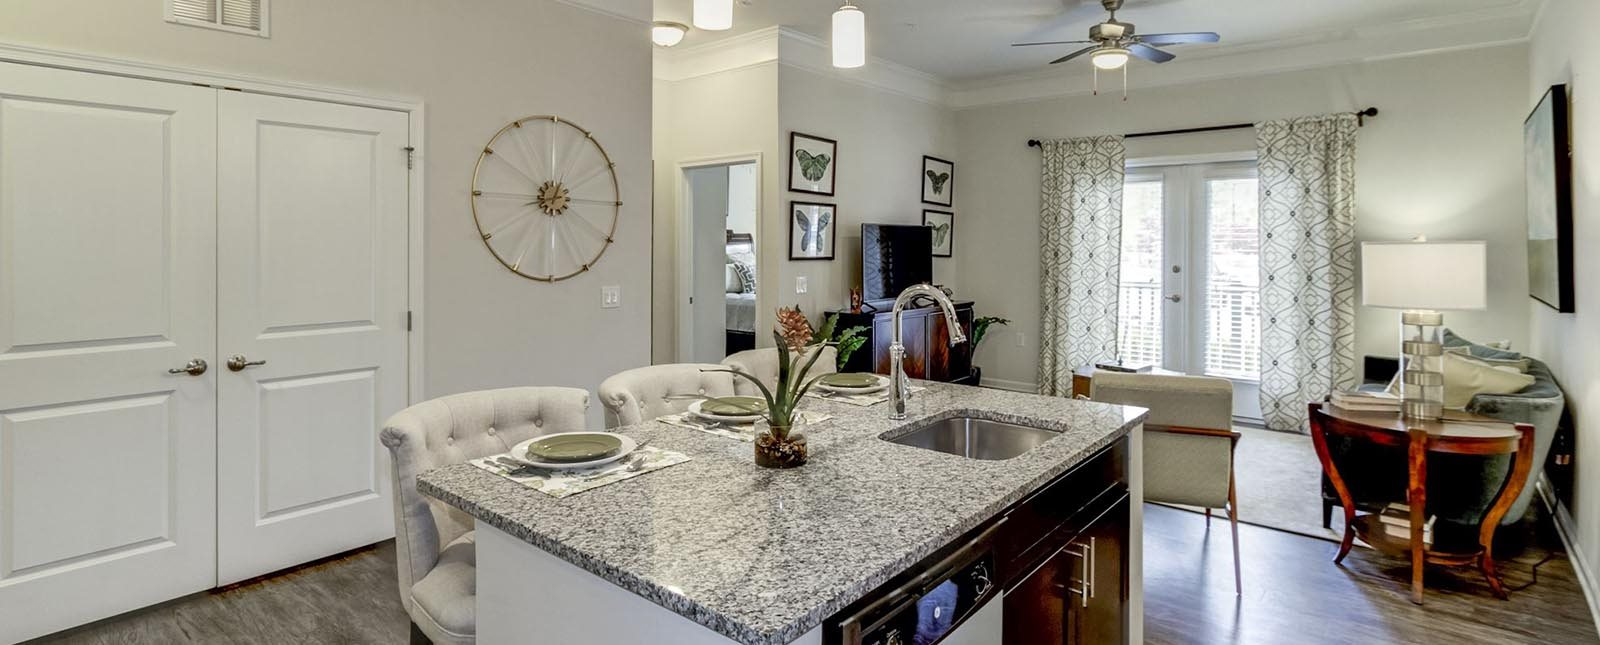 Kitchen Island of The Haven luxury apartments in Malvern, PA